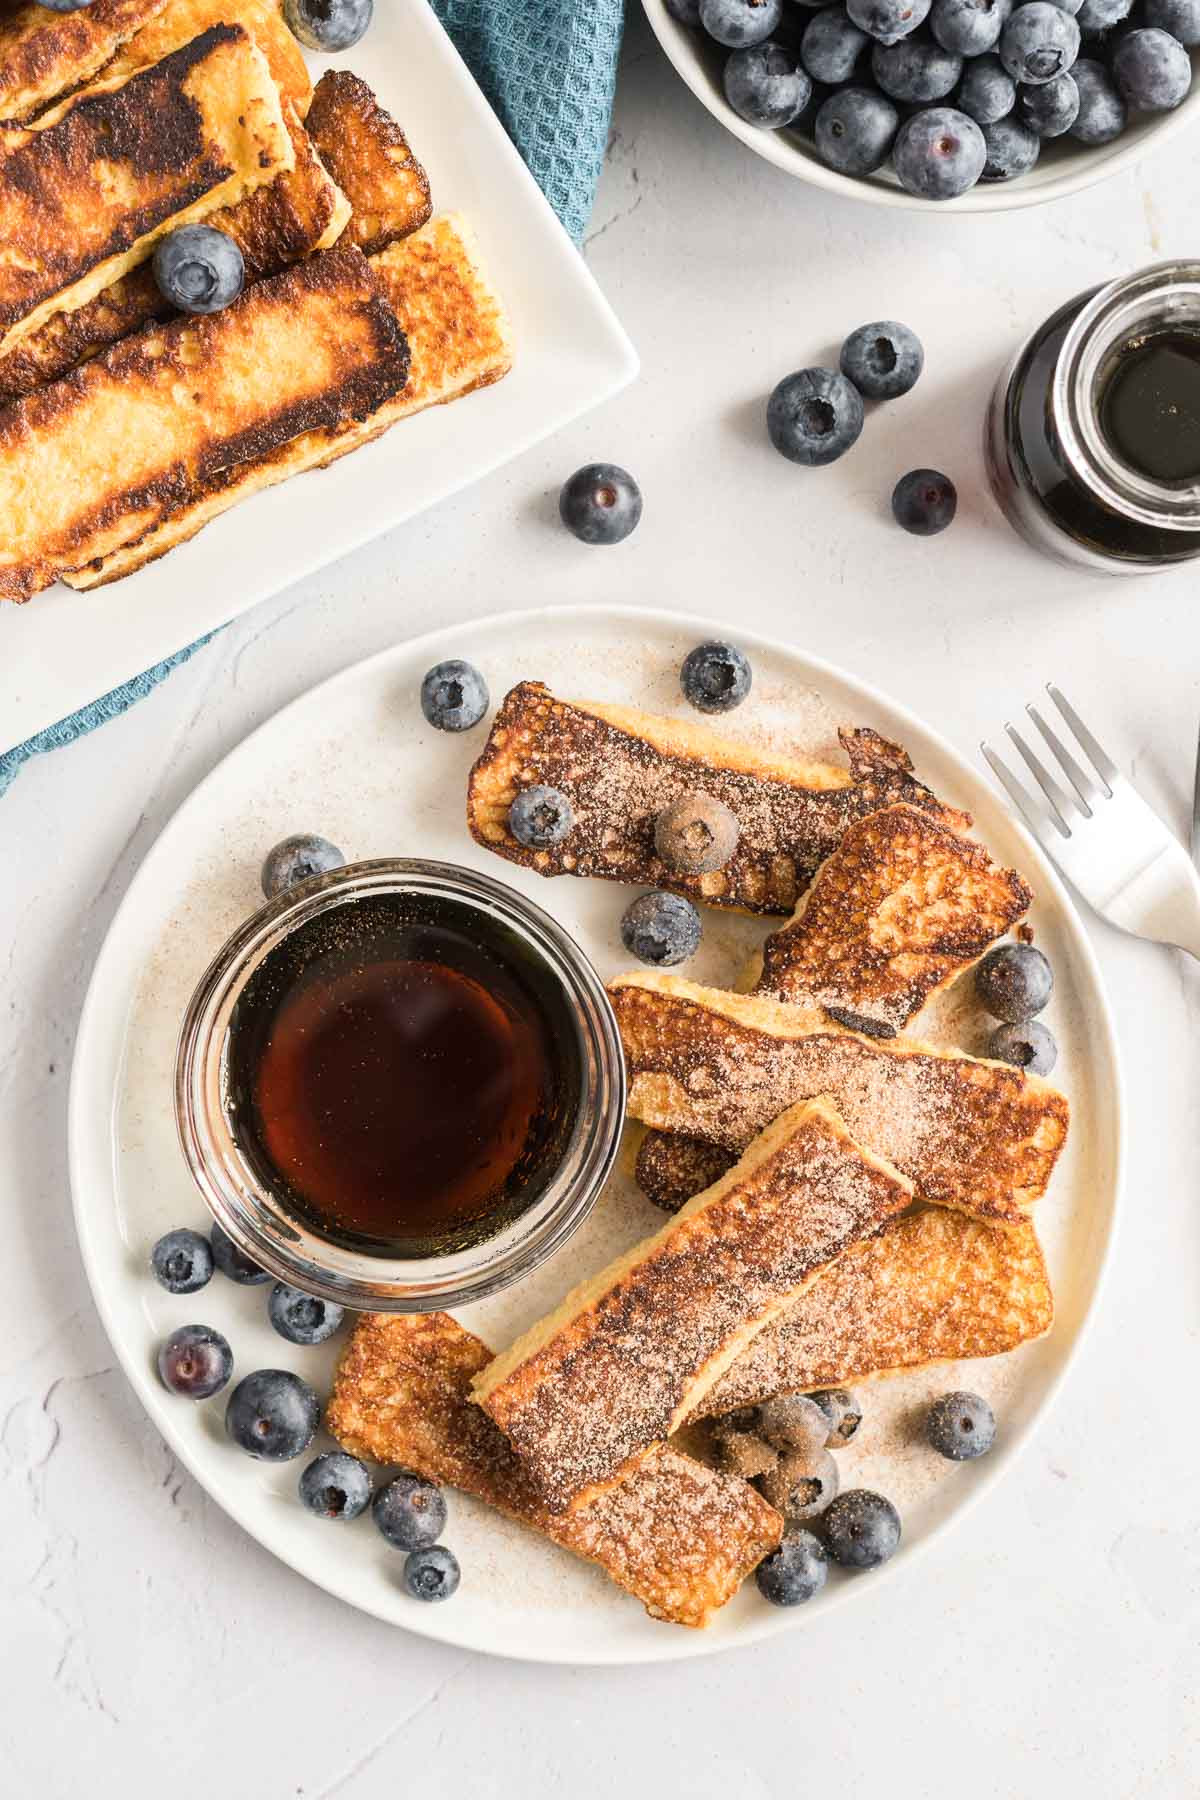 French toast sticks on a plate with cinnamon sugar, blueberries and syrup.